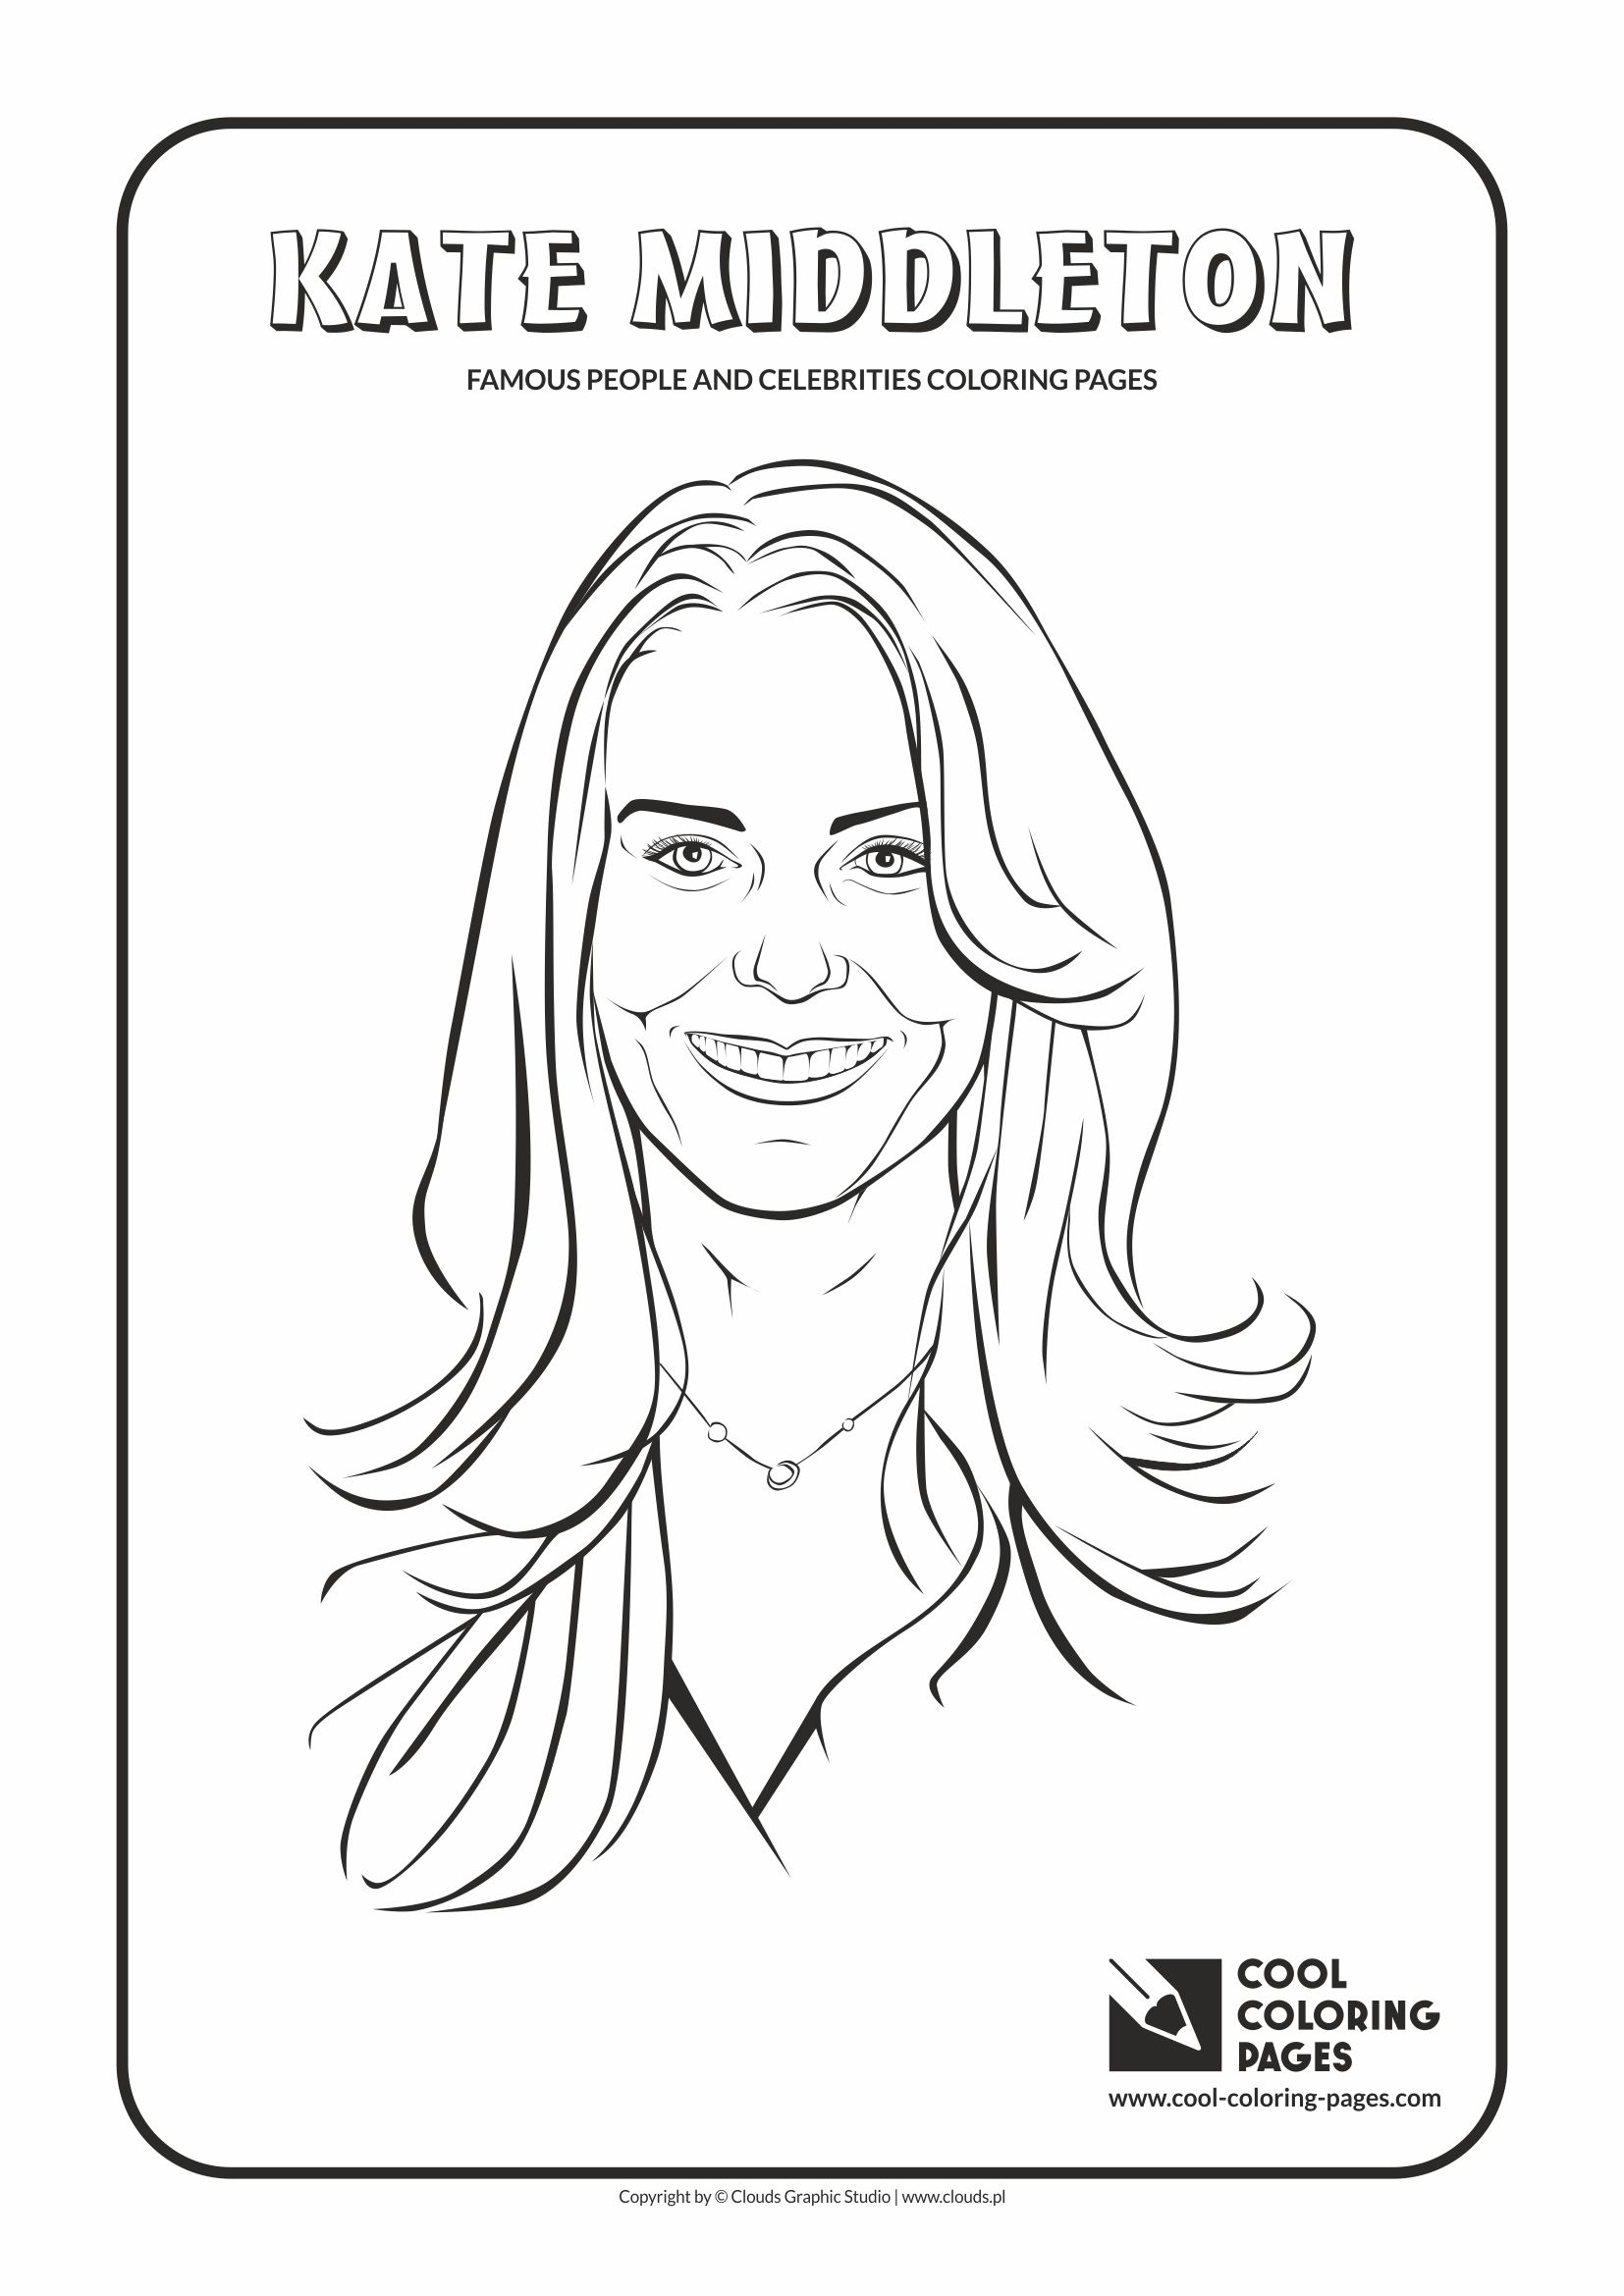 Cool Coloring Pages Famous People And Celebrities Cool